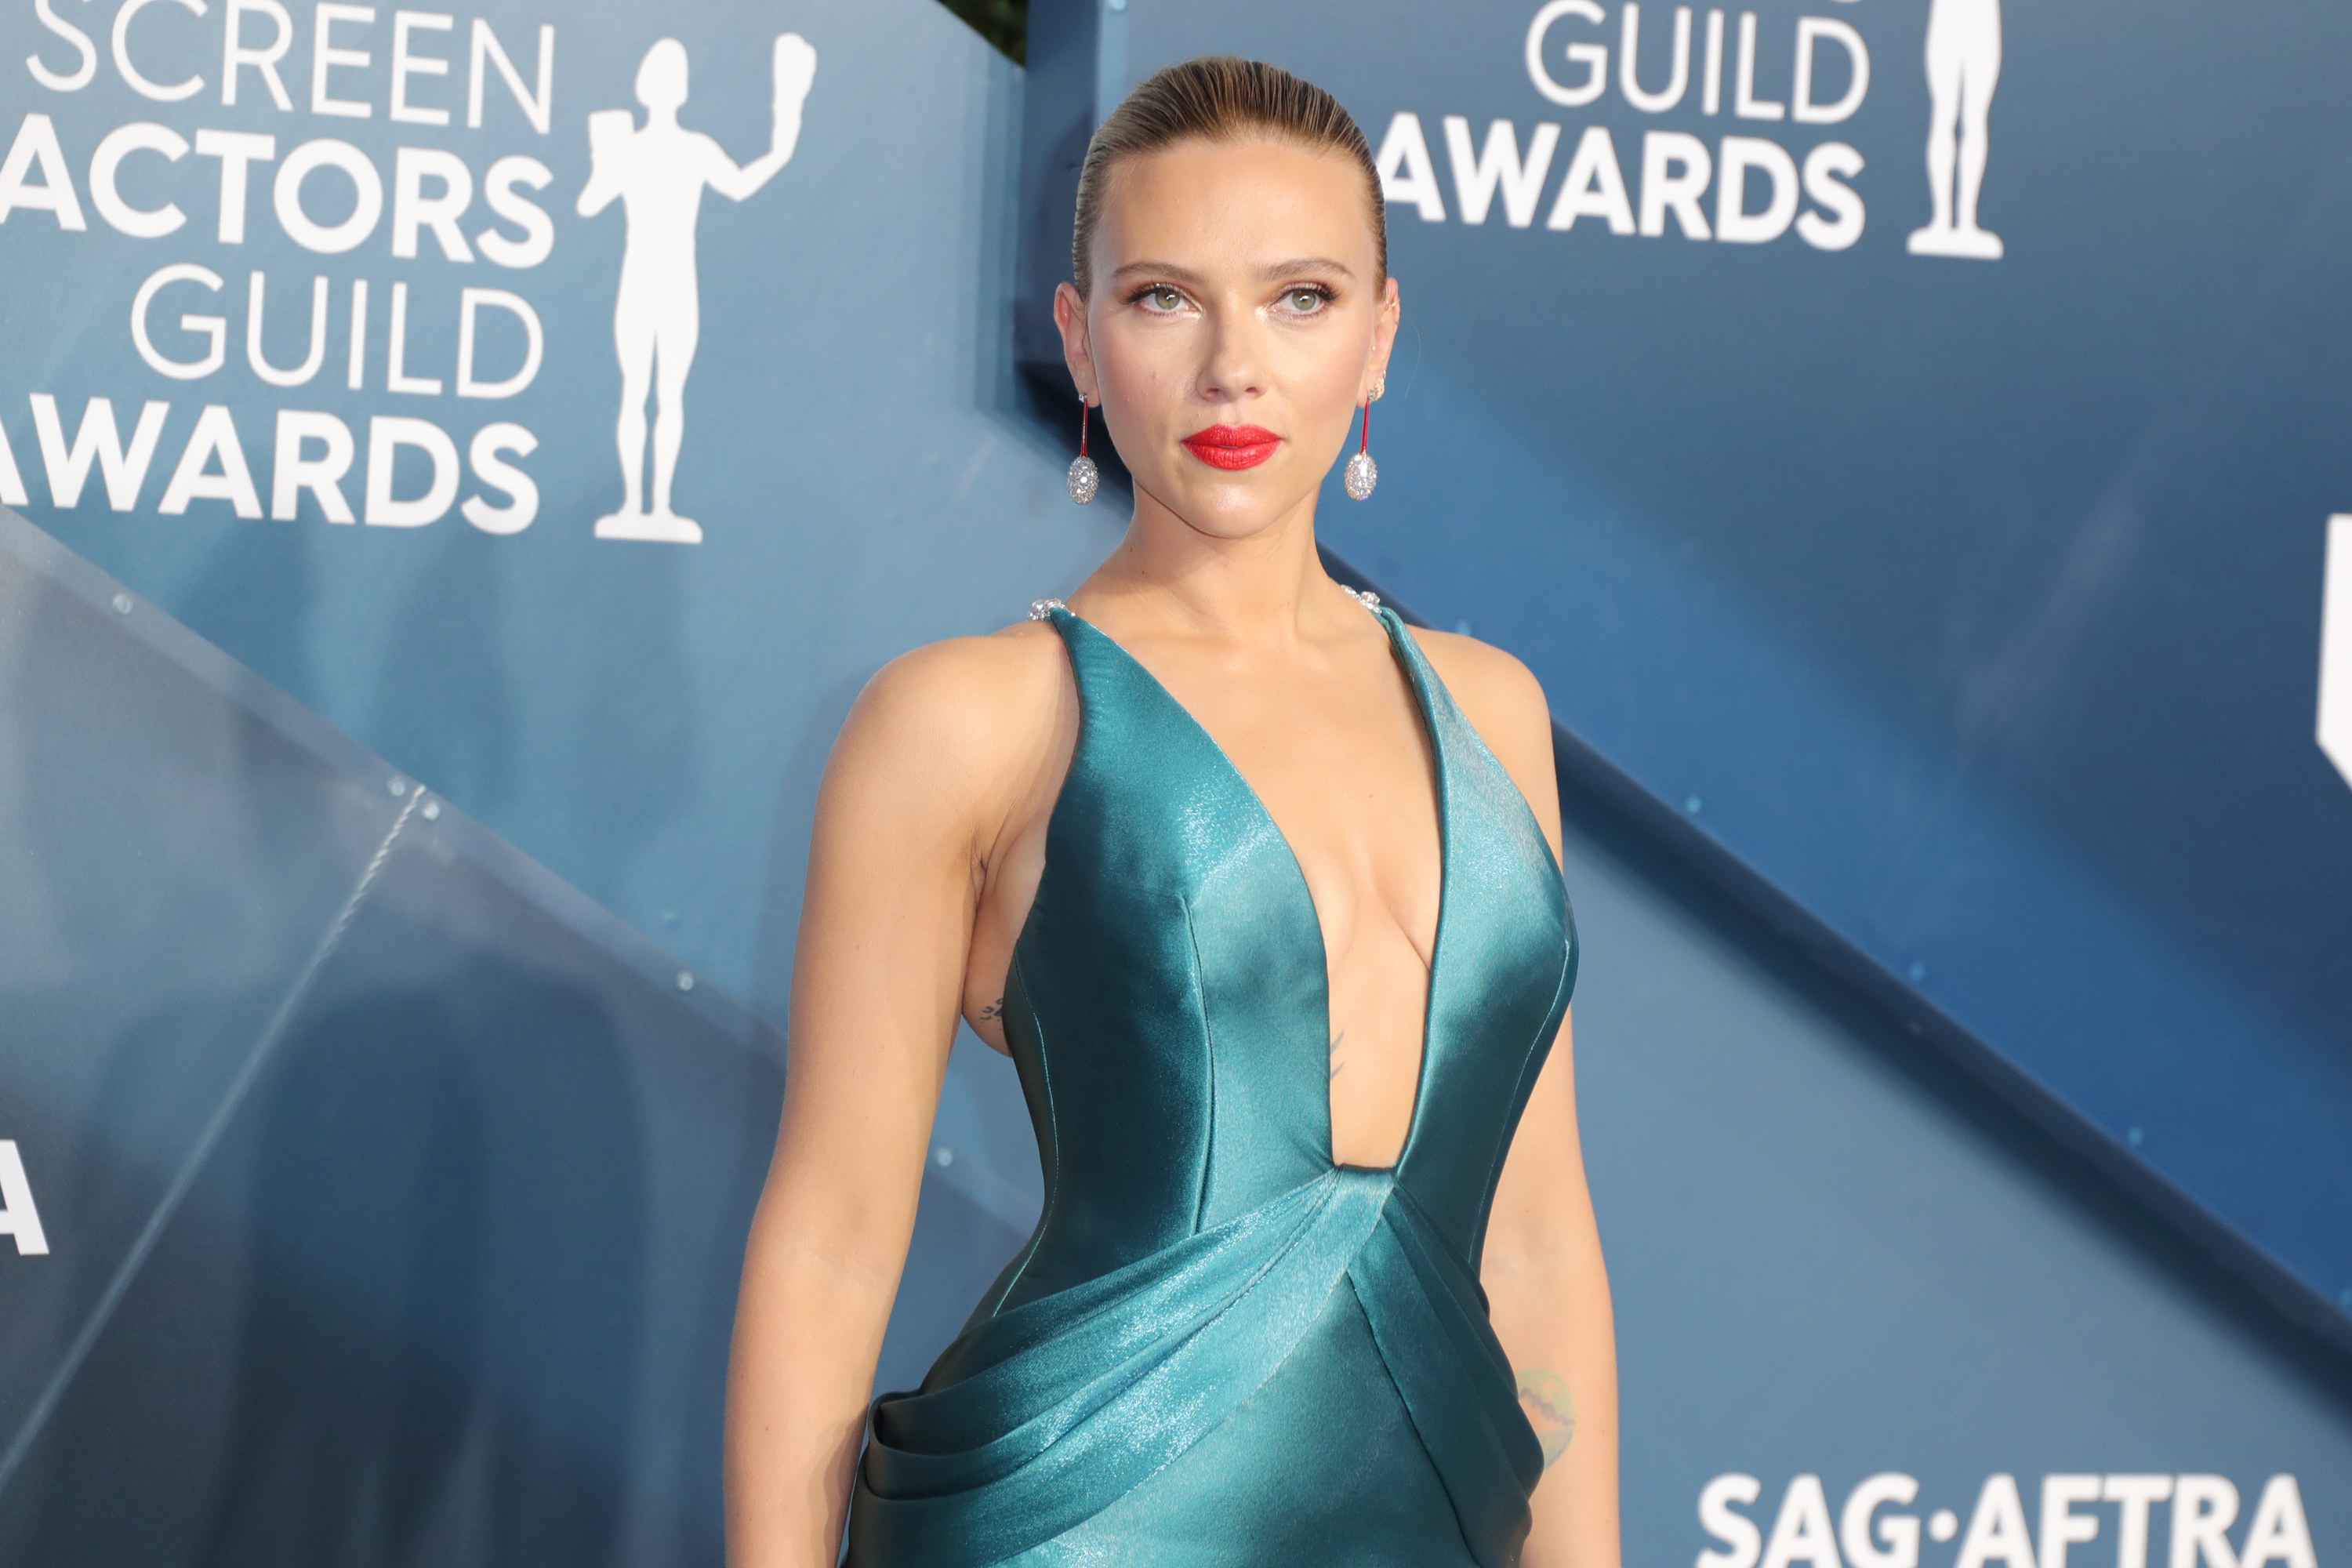 Scarlett wears a teal gown with a plunging square neckline